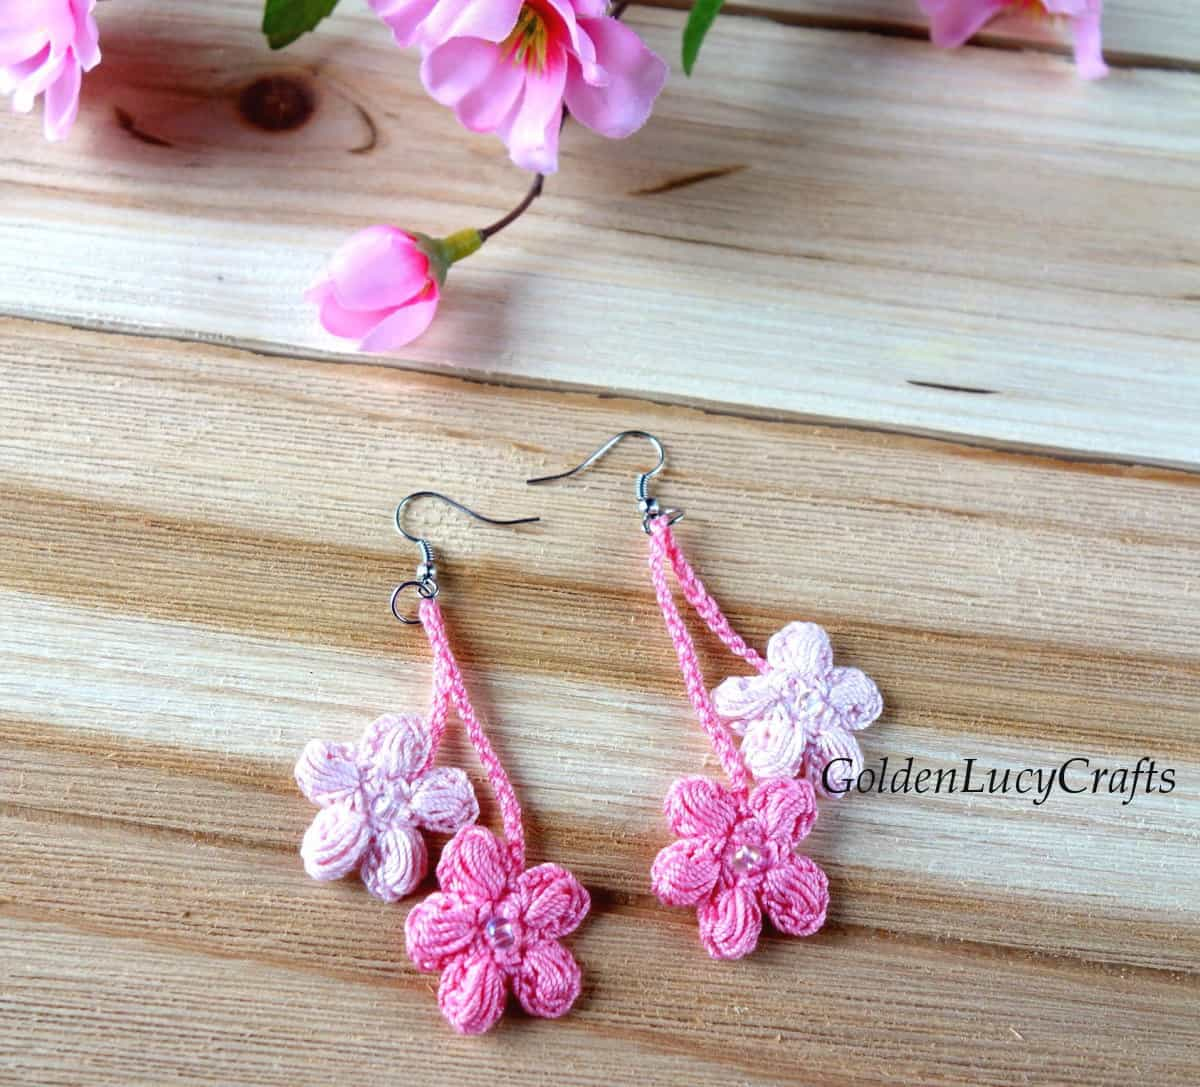 Crocheted cherry blossom earrings on wooden surface.